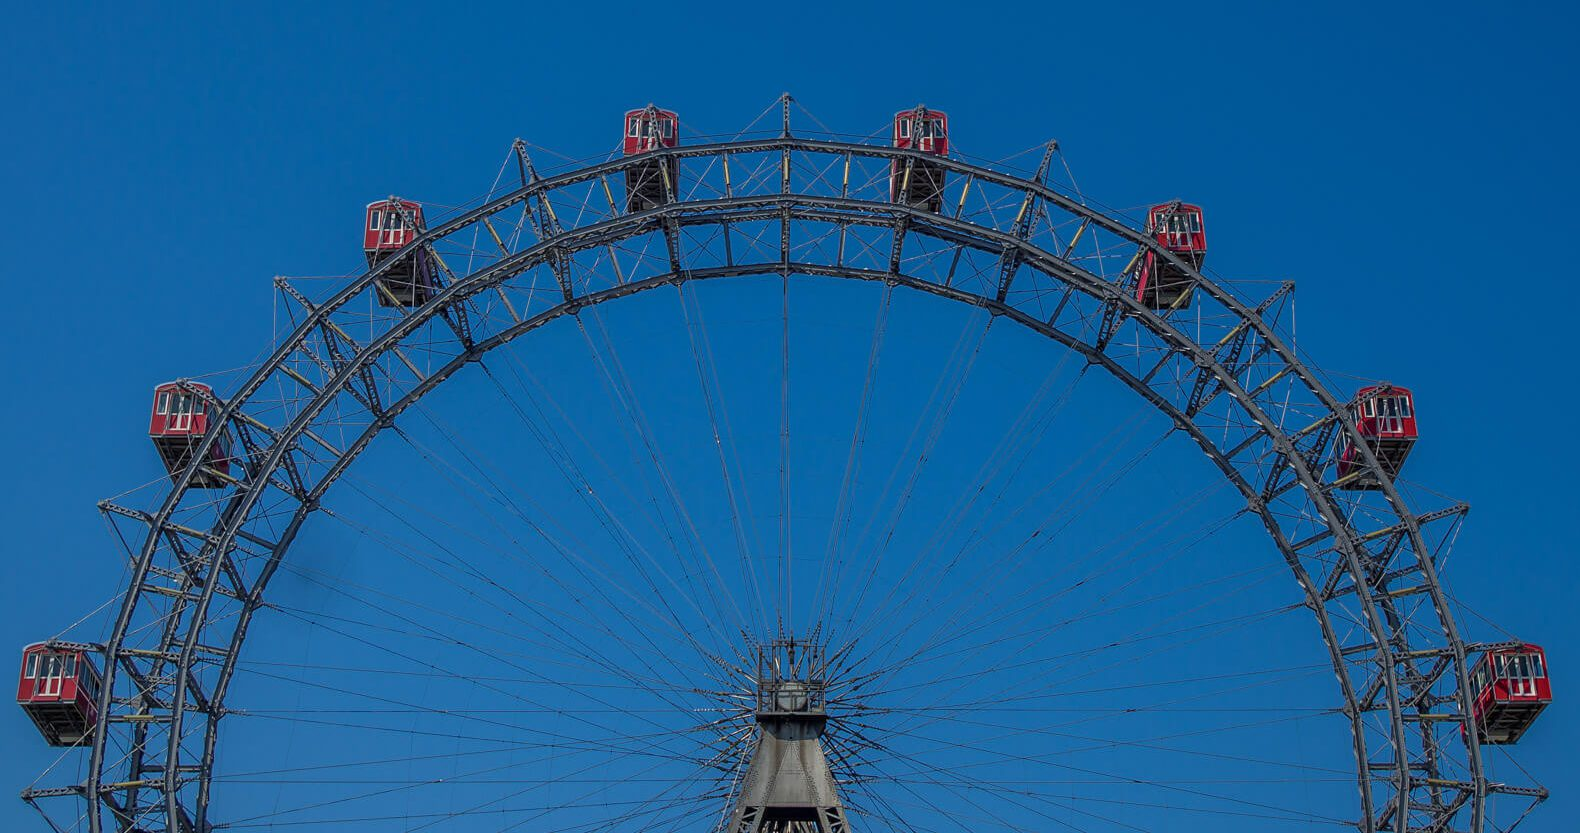 Our Central Europe Itinerary - From Vienna to Budapest - Prater